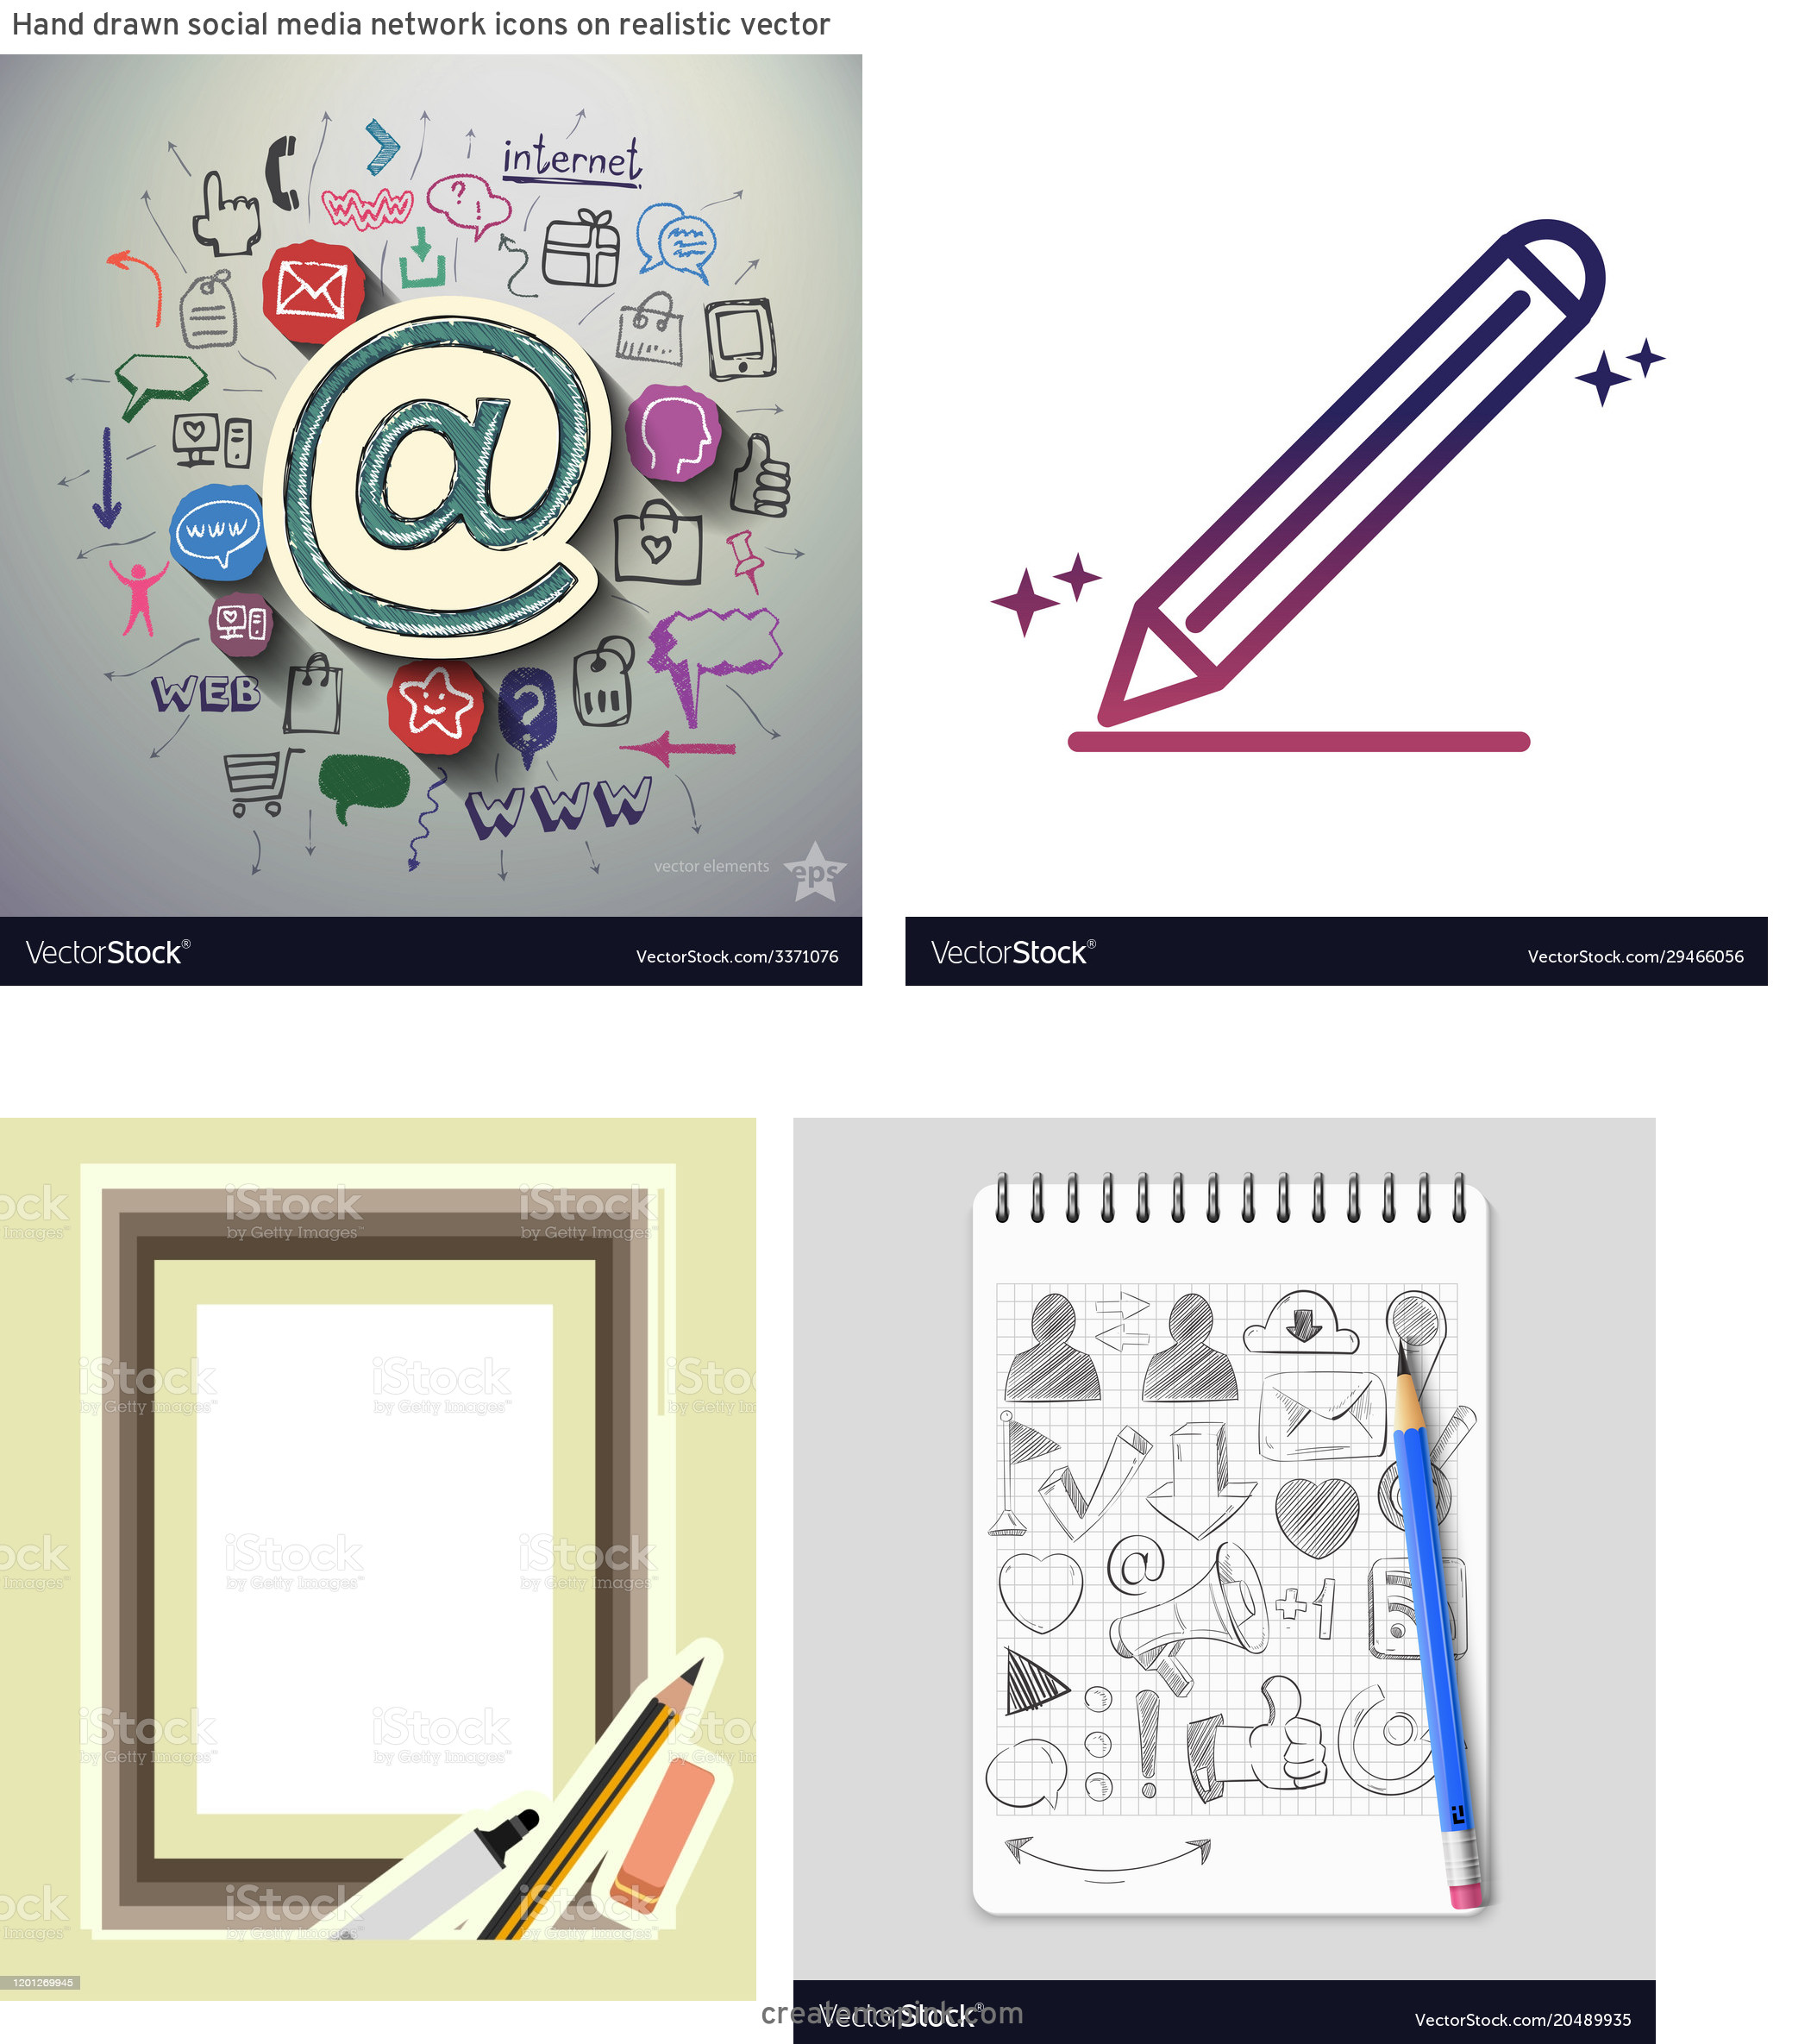 Pencil Icon Vectors Social Media: Hand Drawn Social Media Network Icons On Realistic Vector